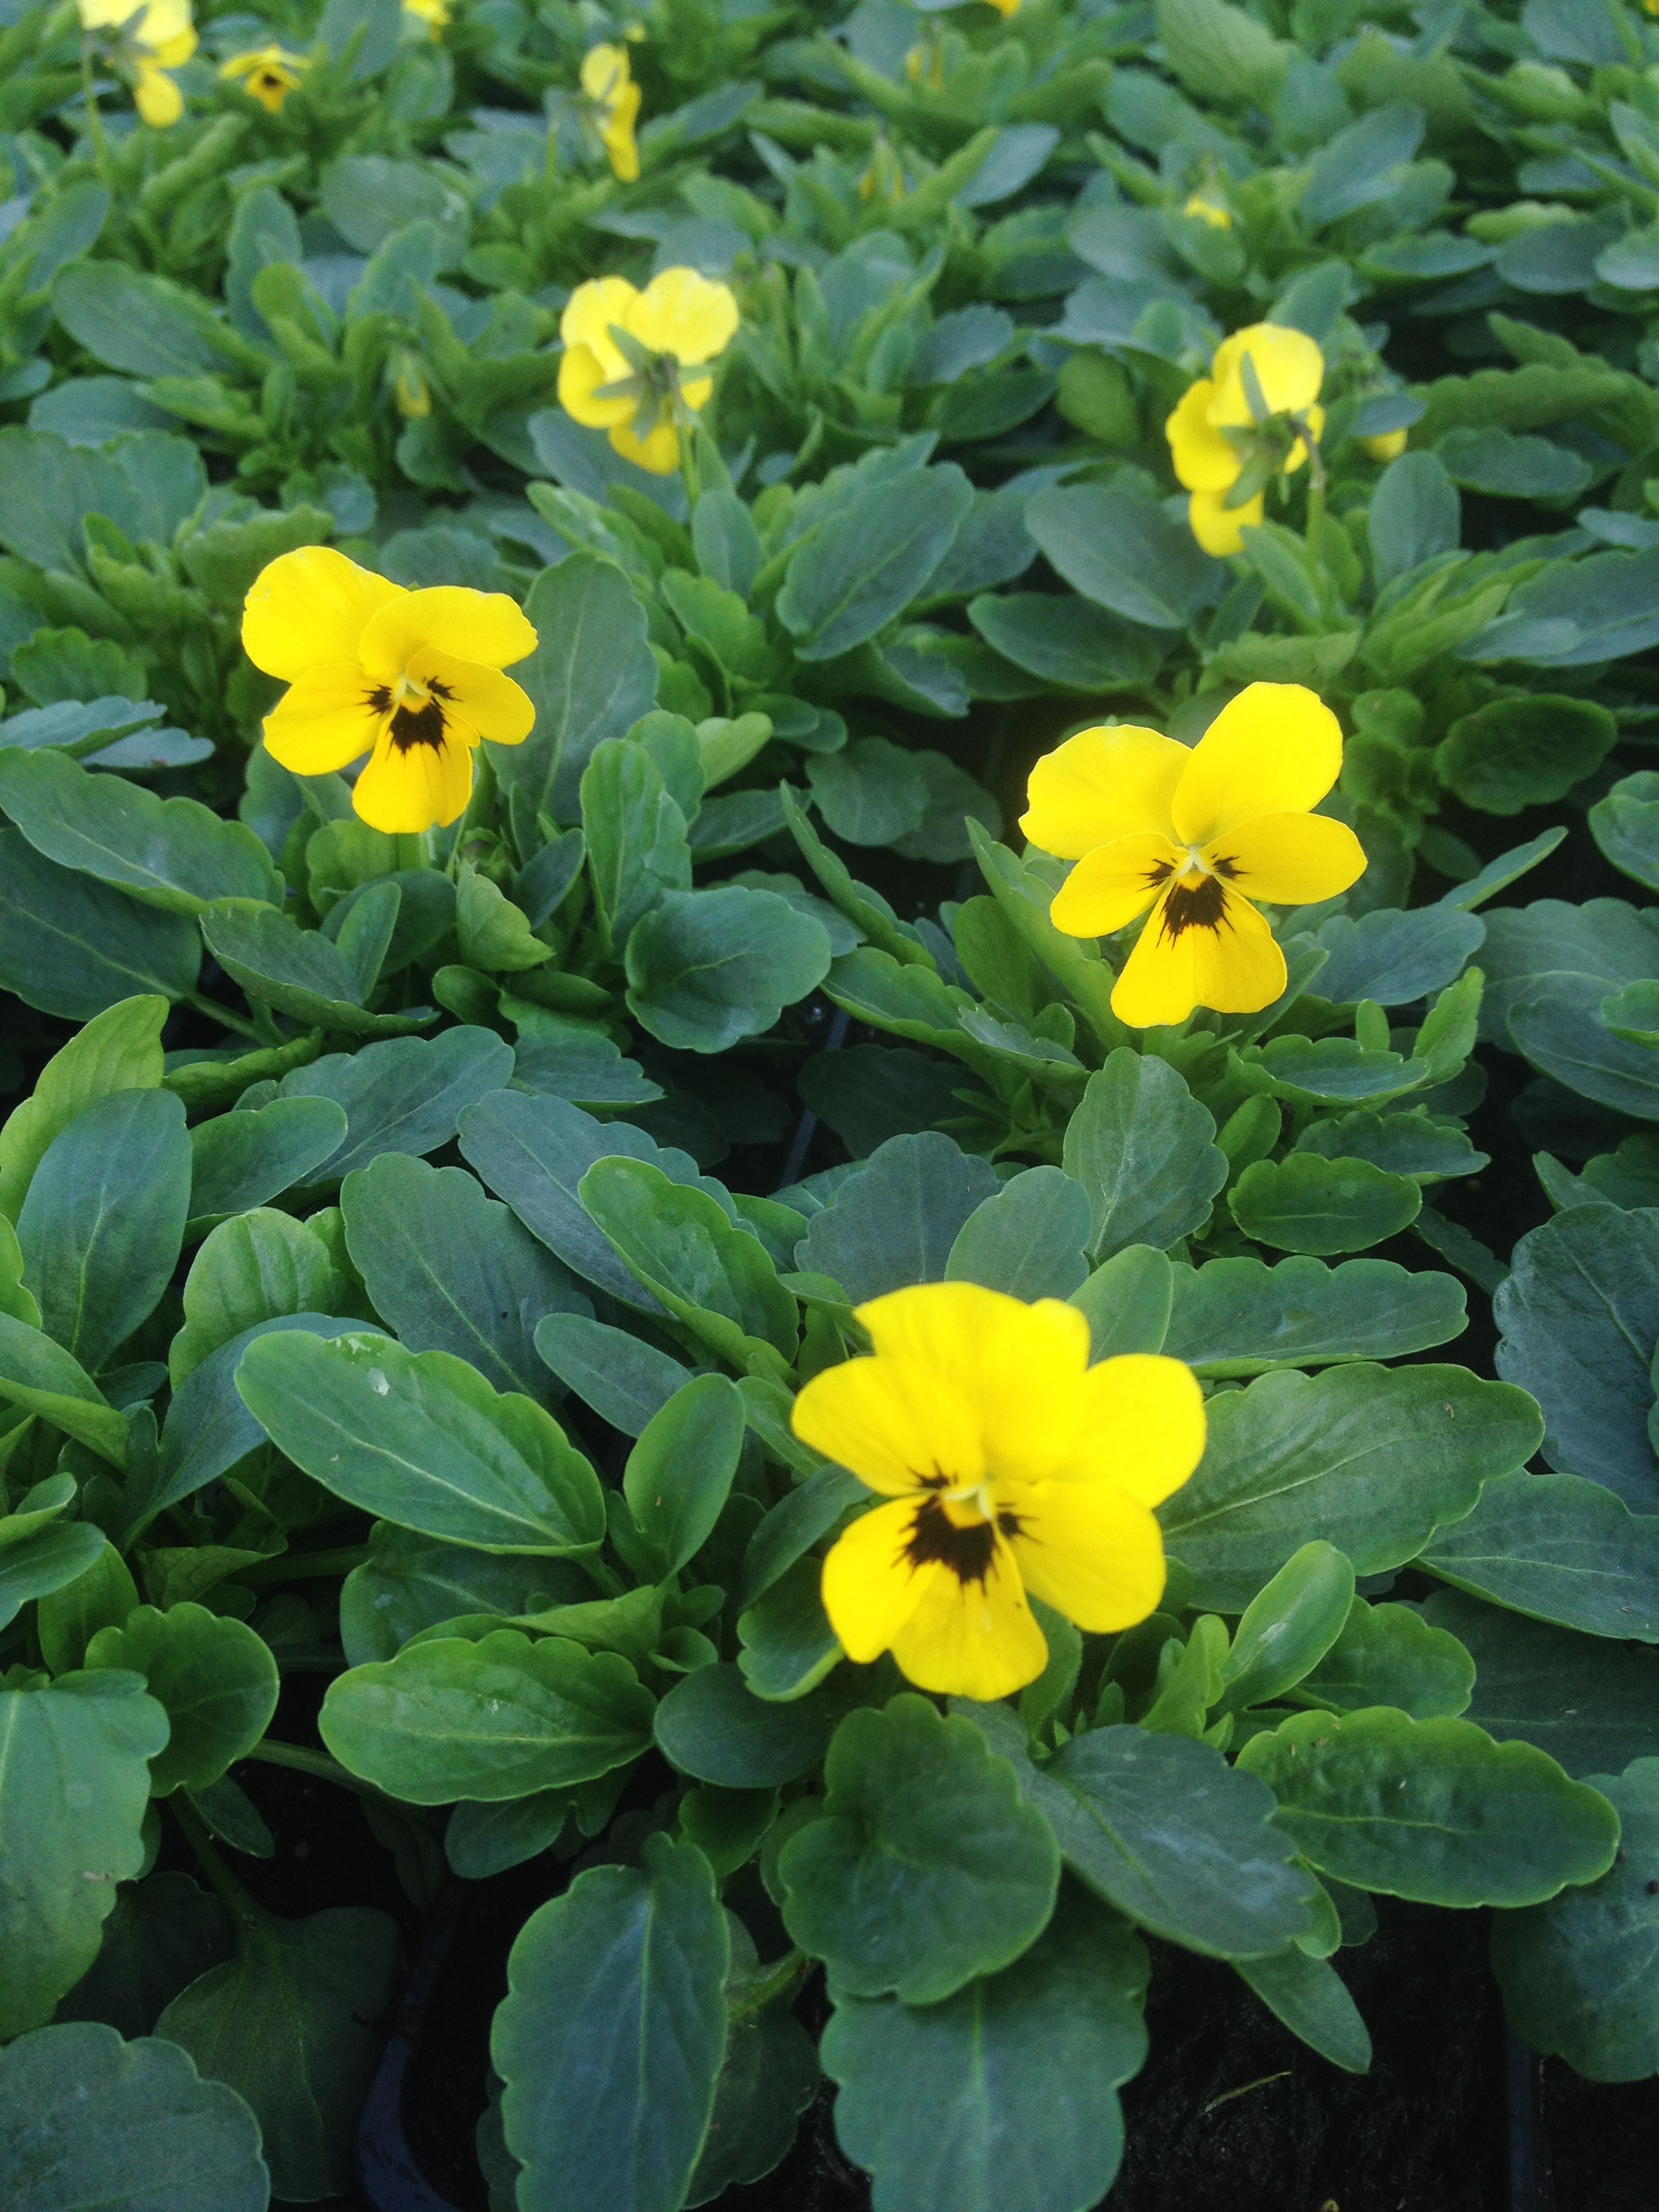 Viola x cornuta ´Twix F1 Yellow with eye´